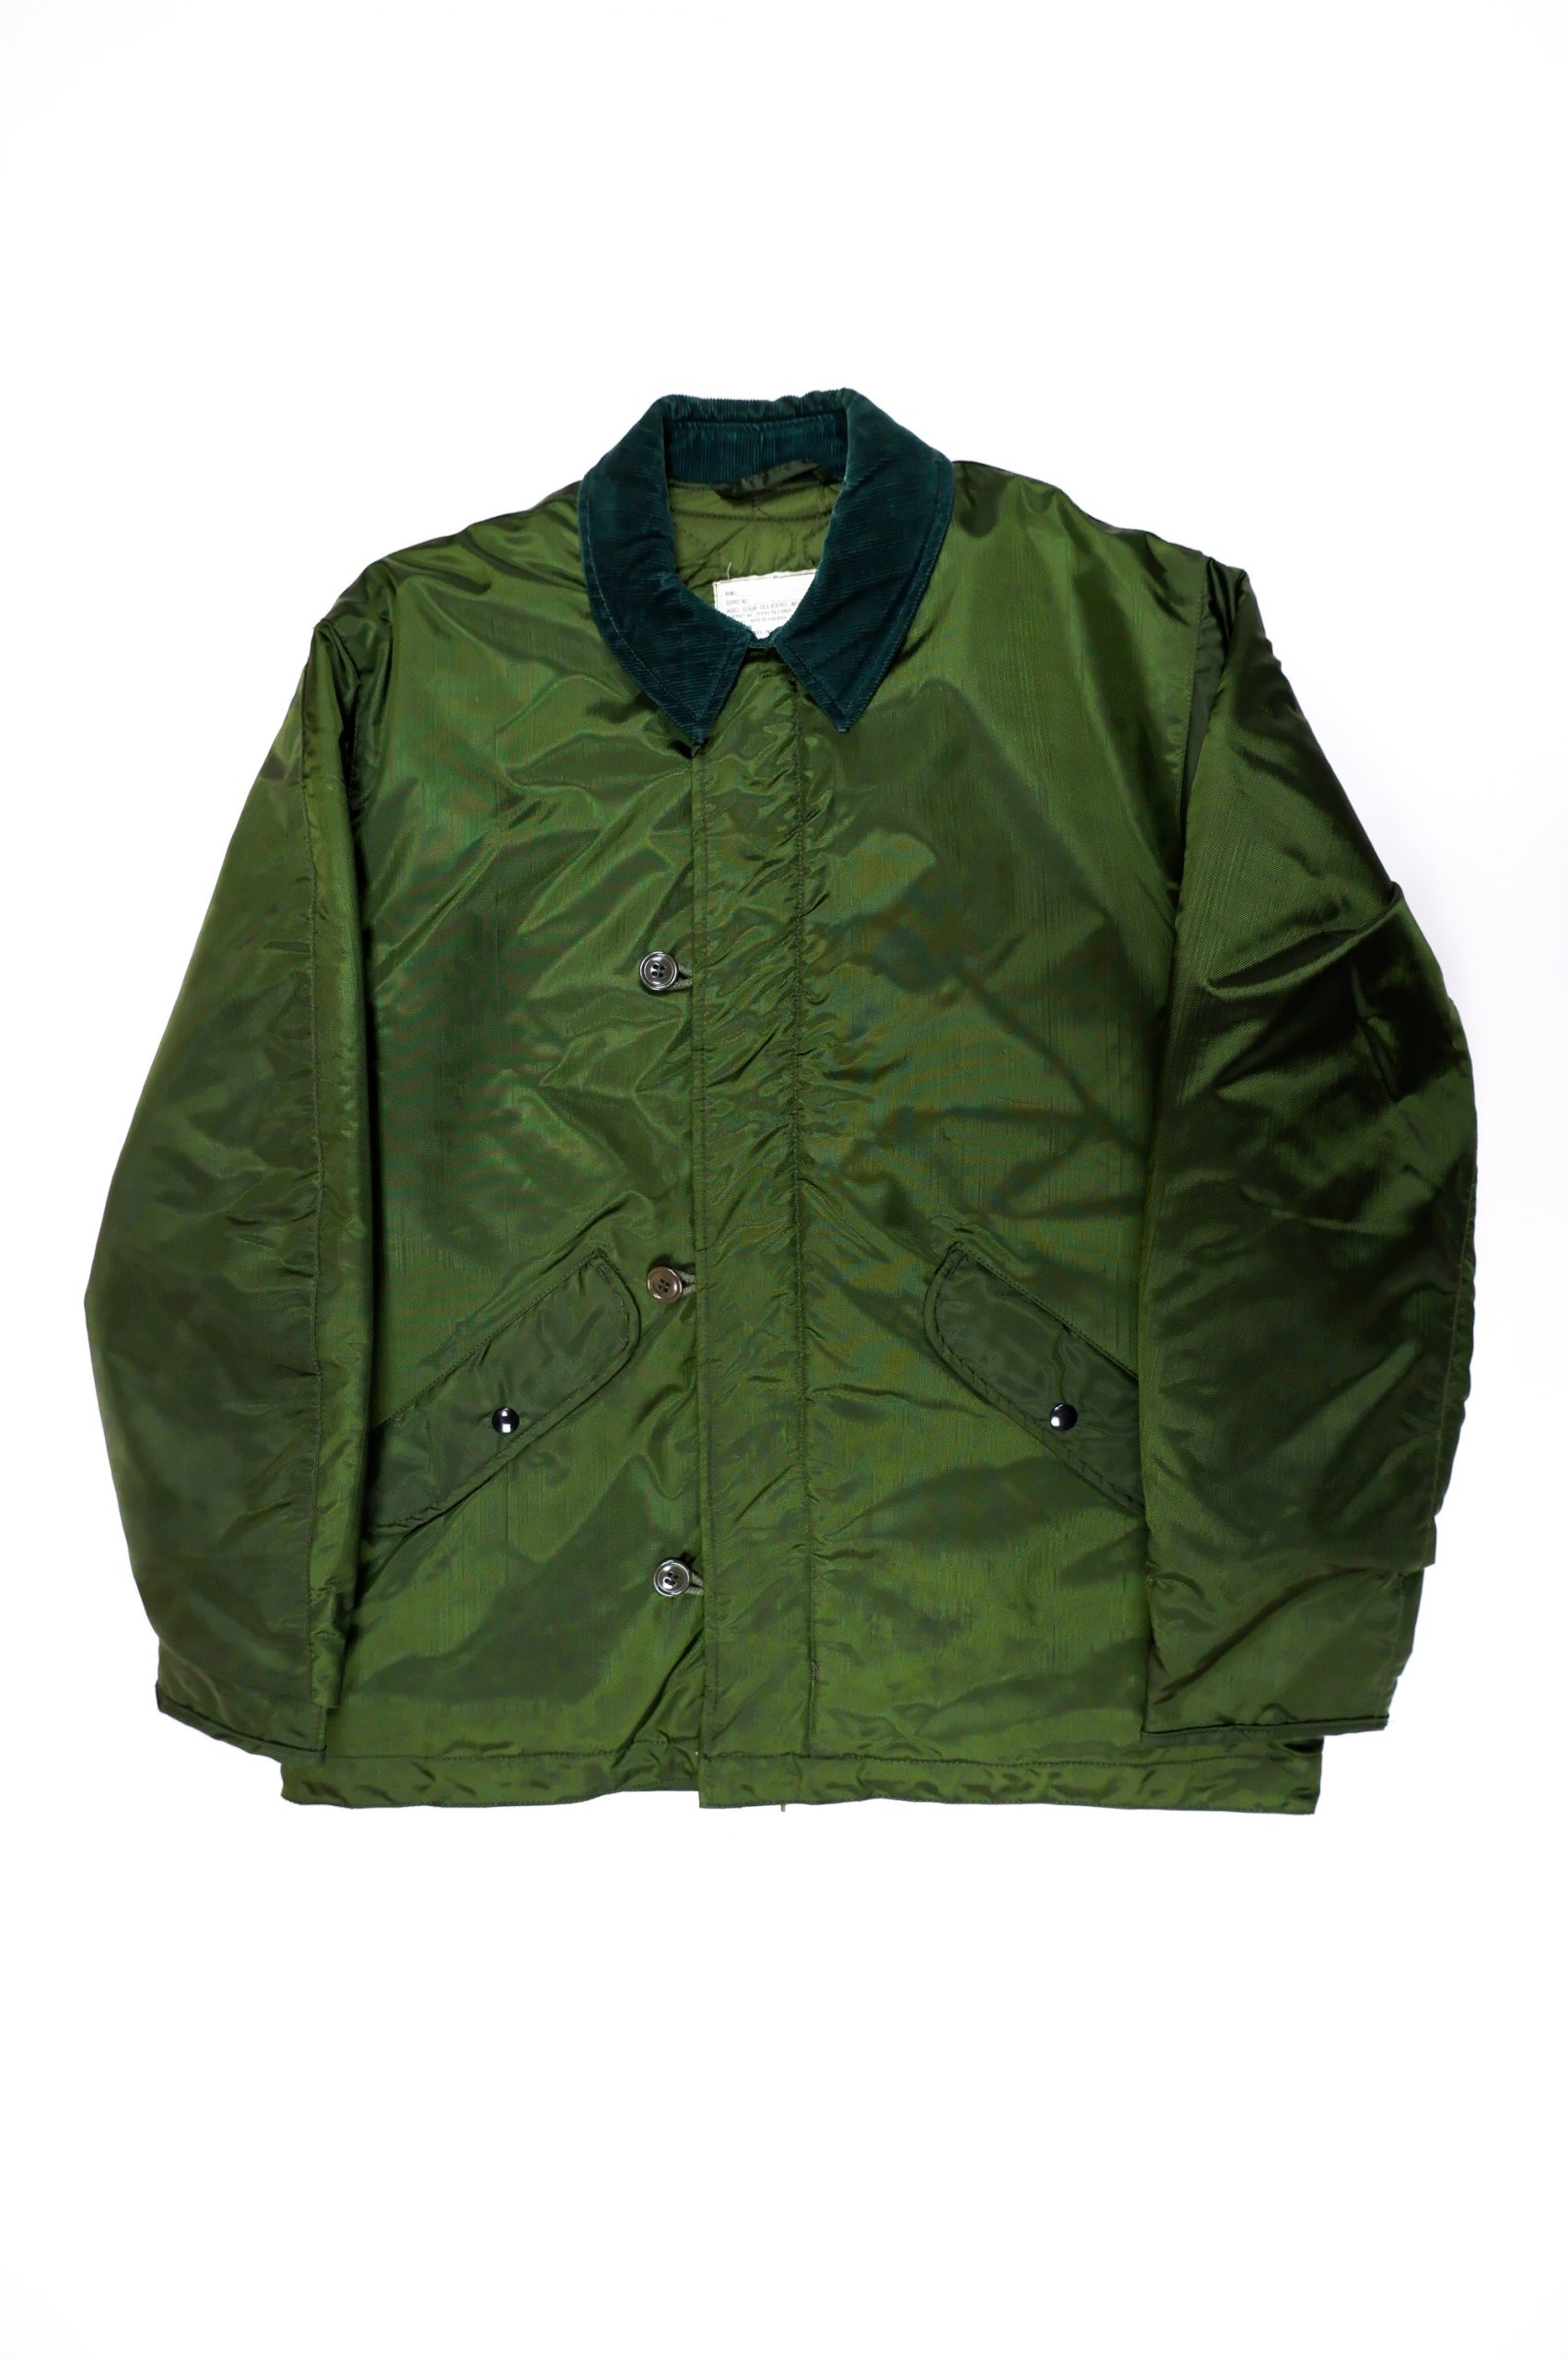 70's Vintage Military Extreme Weather Impermeable Jacket-13